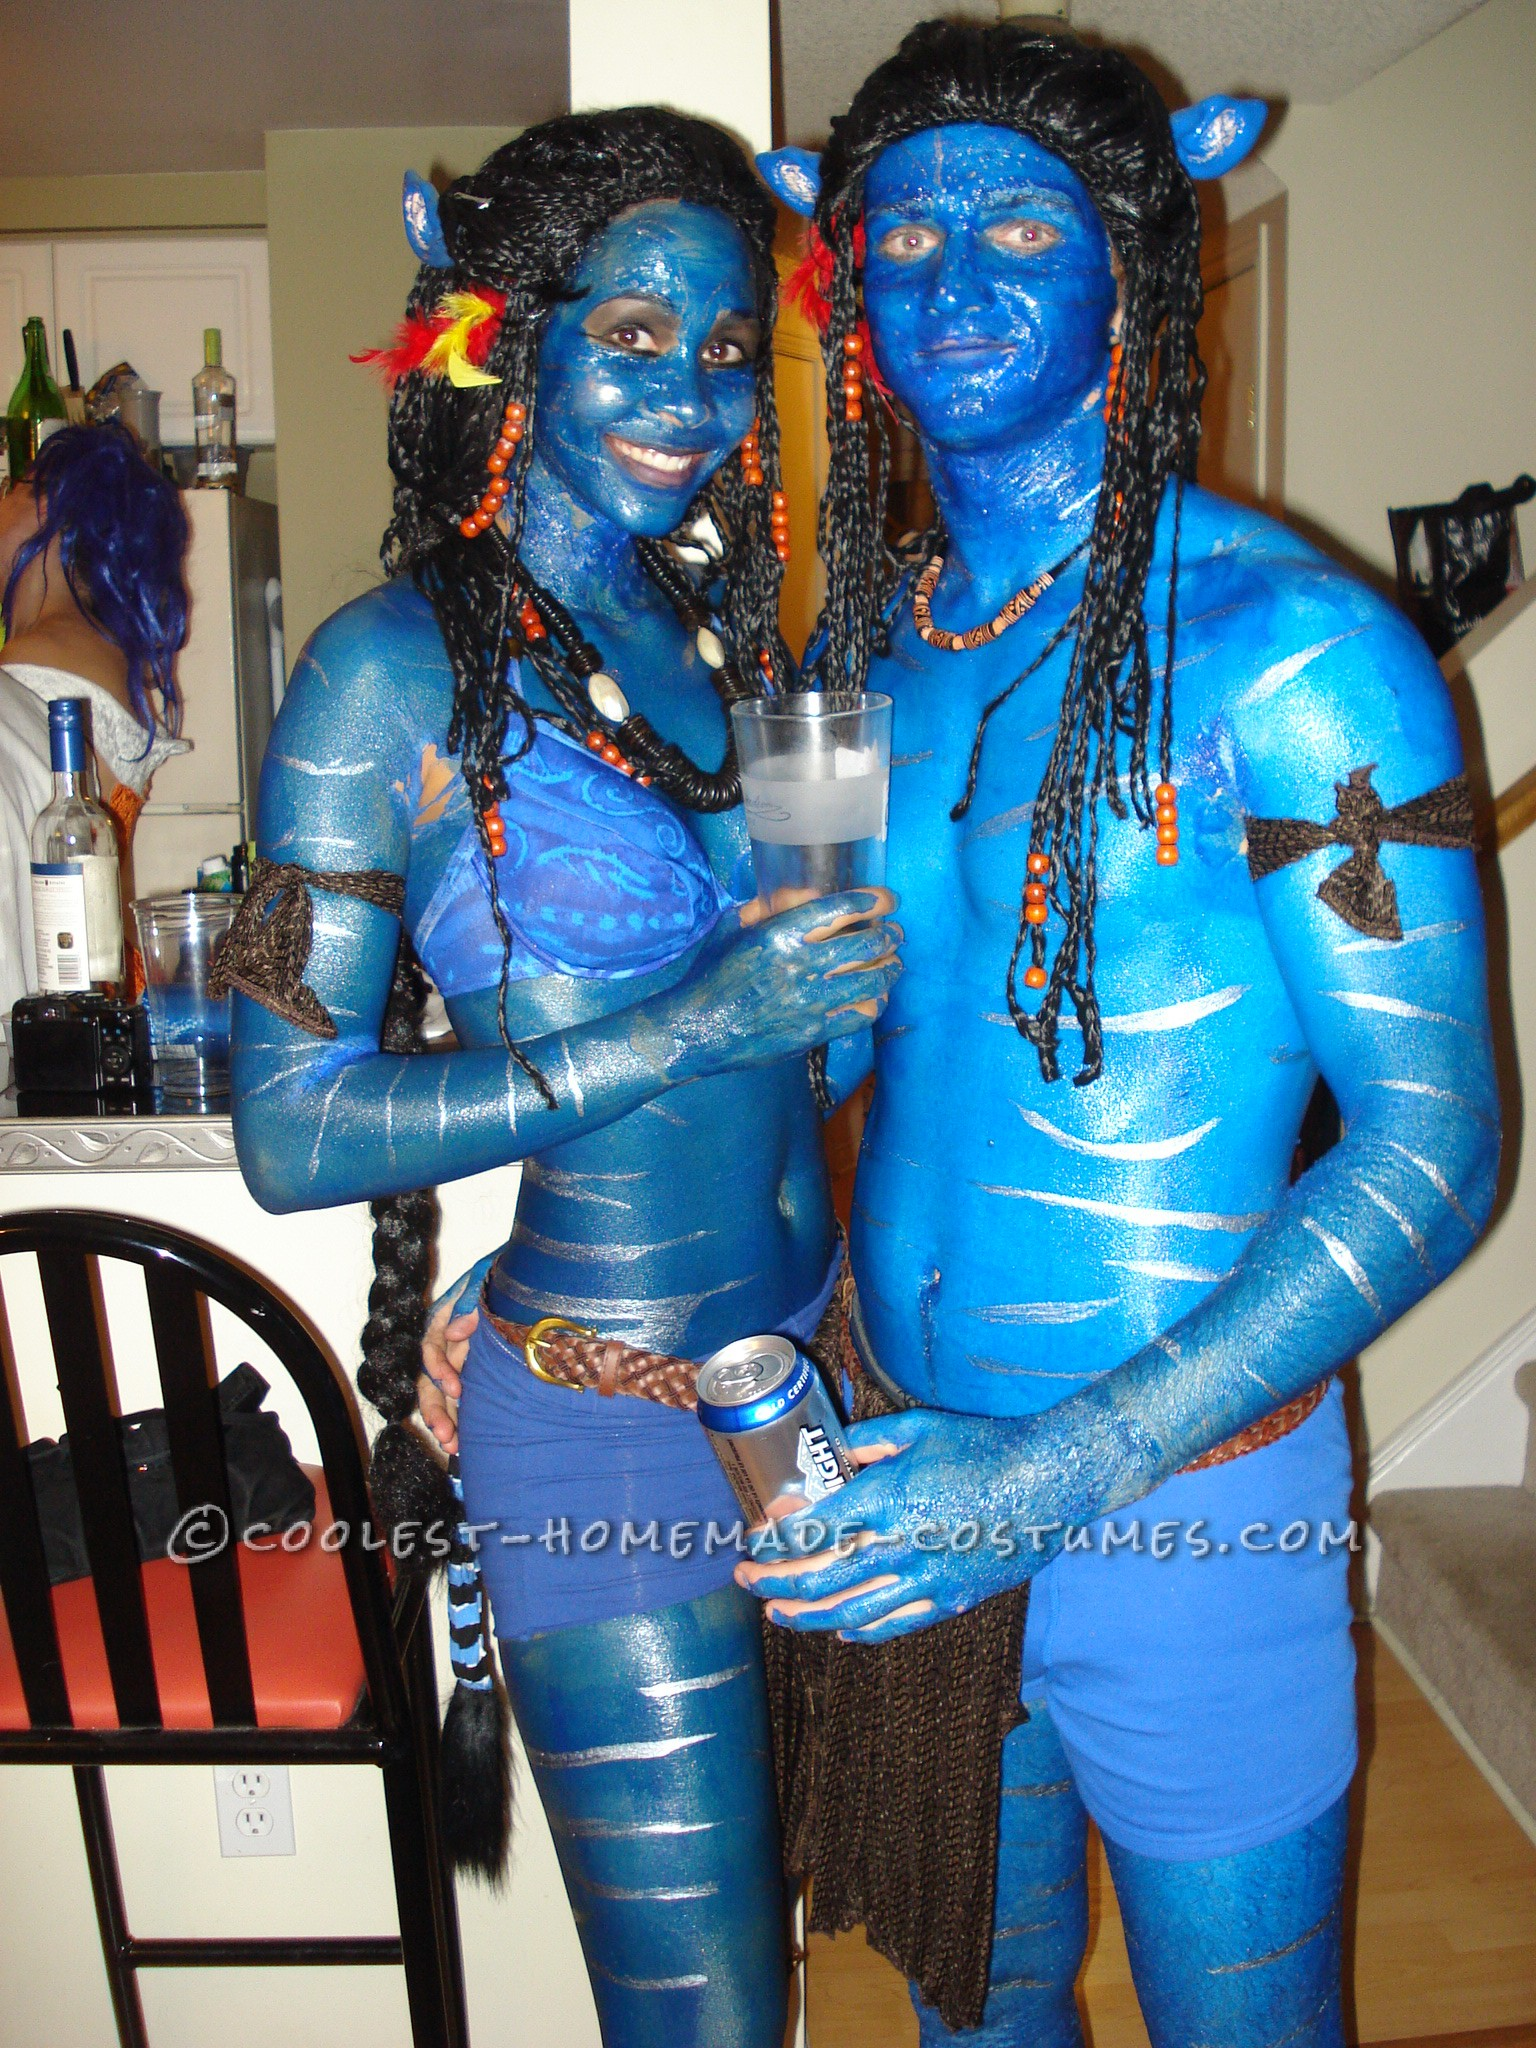 10 Best Sexy Costumes for Couples This Halloween